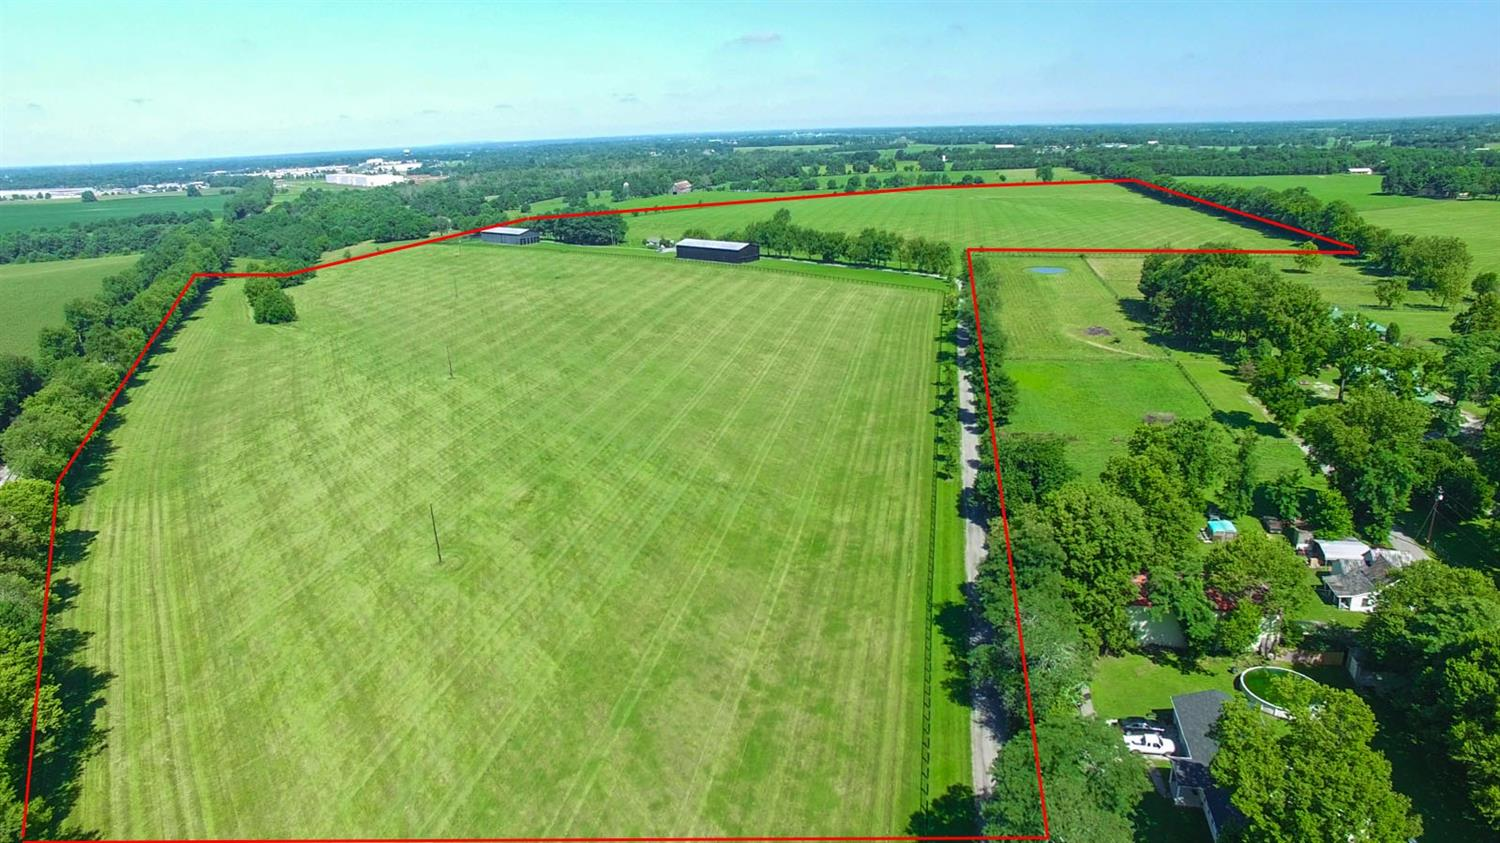 A%20hidden%2082%20acre%20gem%20in%20the%20middle%20of%20Woodford%20Co%20KY.%20This%20property%20has%20recently%20been%20completely%20refurbished%20and%20improved!%20Amenities%20include%20Two%20Large%20140x48%20Barns%20with%2014x16%20ft%20bents,%201285%20sqft%203%20bedroom%202%20bath%20modular%20residence,%20nearly%202%20miles%20of%20Diamond%20Mesh%20fencing,%20gated%20entrance%20with%20half%20mile%20of%20interior%20roadway,%20water%20lines%20and%20automatic%20mirafount%20waterers%20throughout,%20along%20with%20newly%20seeded%20grasses%20and%20fields.%20This%20property%20could%20be%20further%20developed%20to%20accommodate%20horses%20or%20is%20perfect%20for%20a%20well%20located%20estate.%20Located%20just%20off%20Versailles/Lexington%20road,%20the%20property%20is%20adjacent%20to%20and%20near%20Buck%20Pond%20Farm,%20Golden%20Age,%20Ashview,%20Cove%20Spring%20and%20WinStar%20Farms.